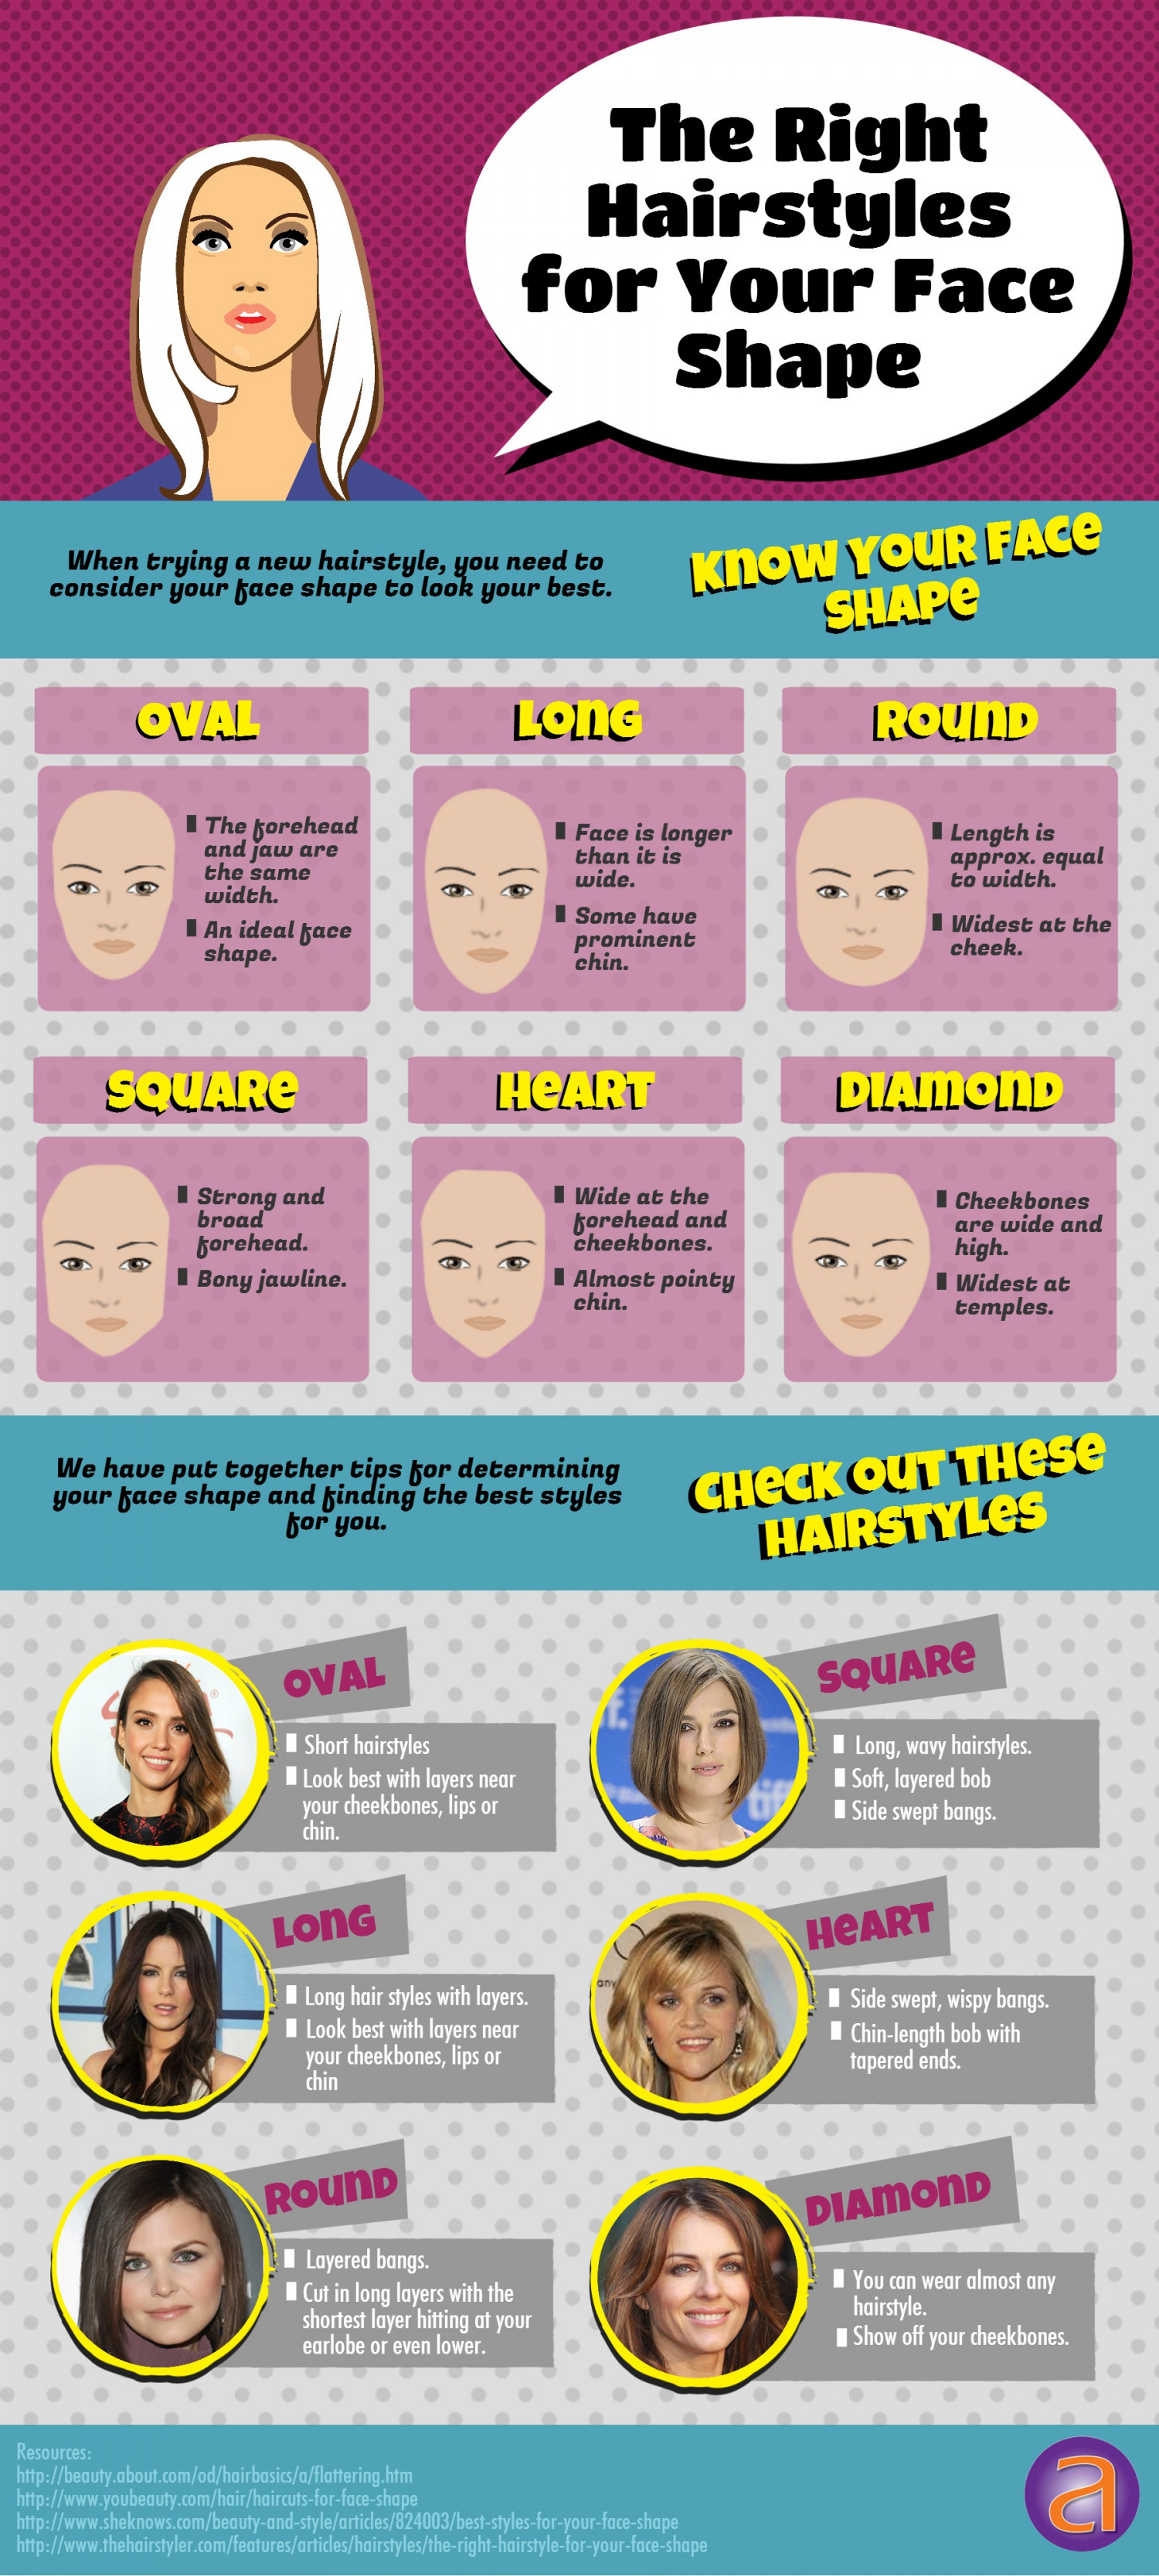 The Right Hairstyles for Your Face Shape Infographic